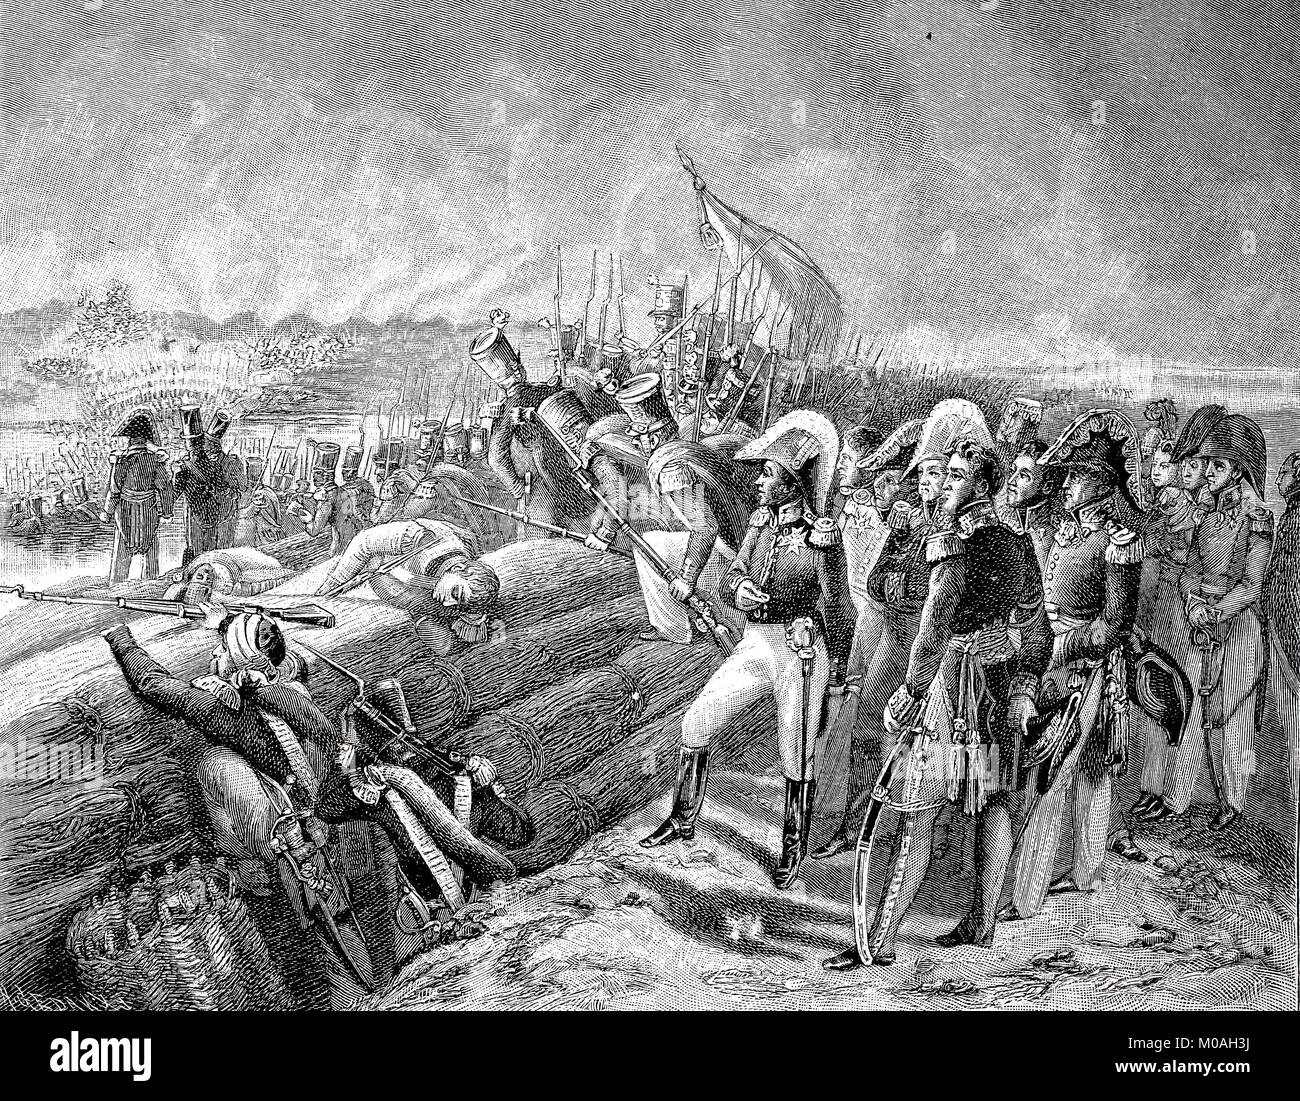 At the Battle of Trocadero on August 31, 1823, the French army captured the fortress on the island of Trocadero - Stock Image